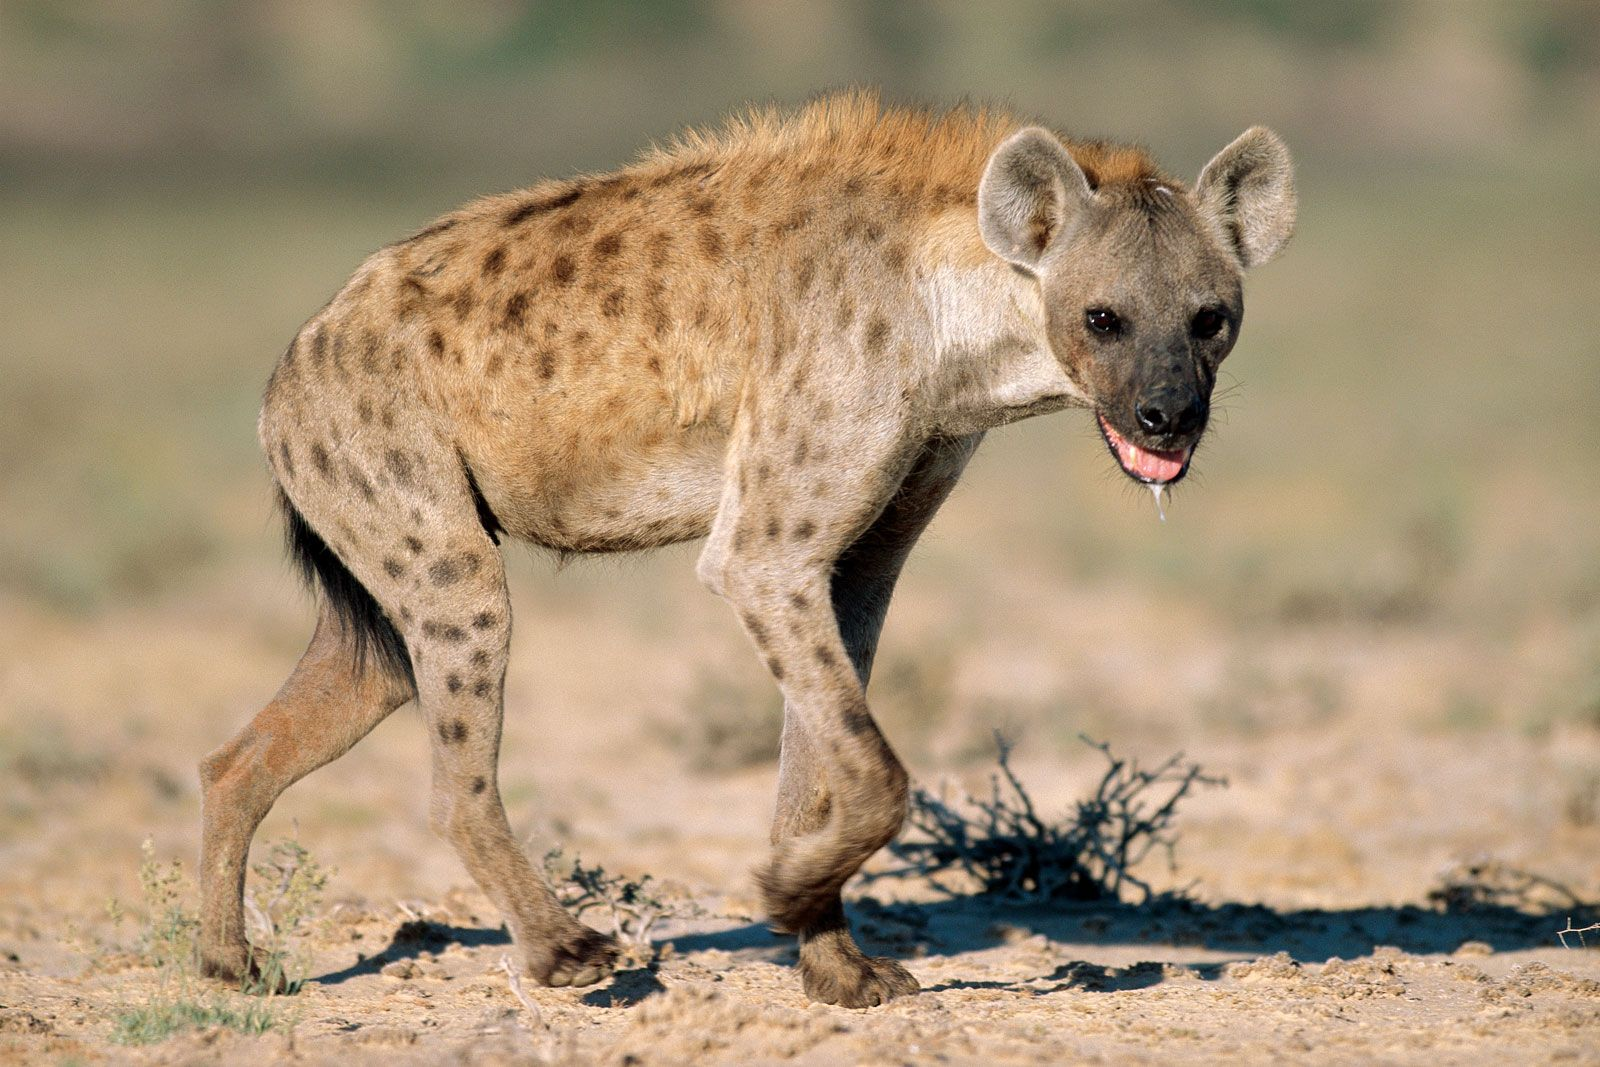 How To Say Hyena In Spanish